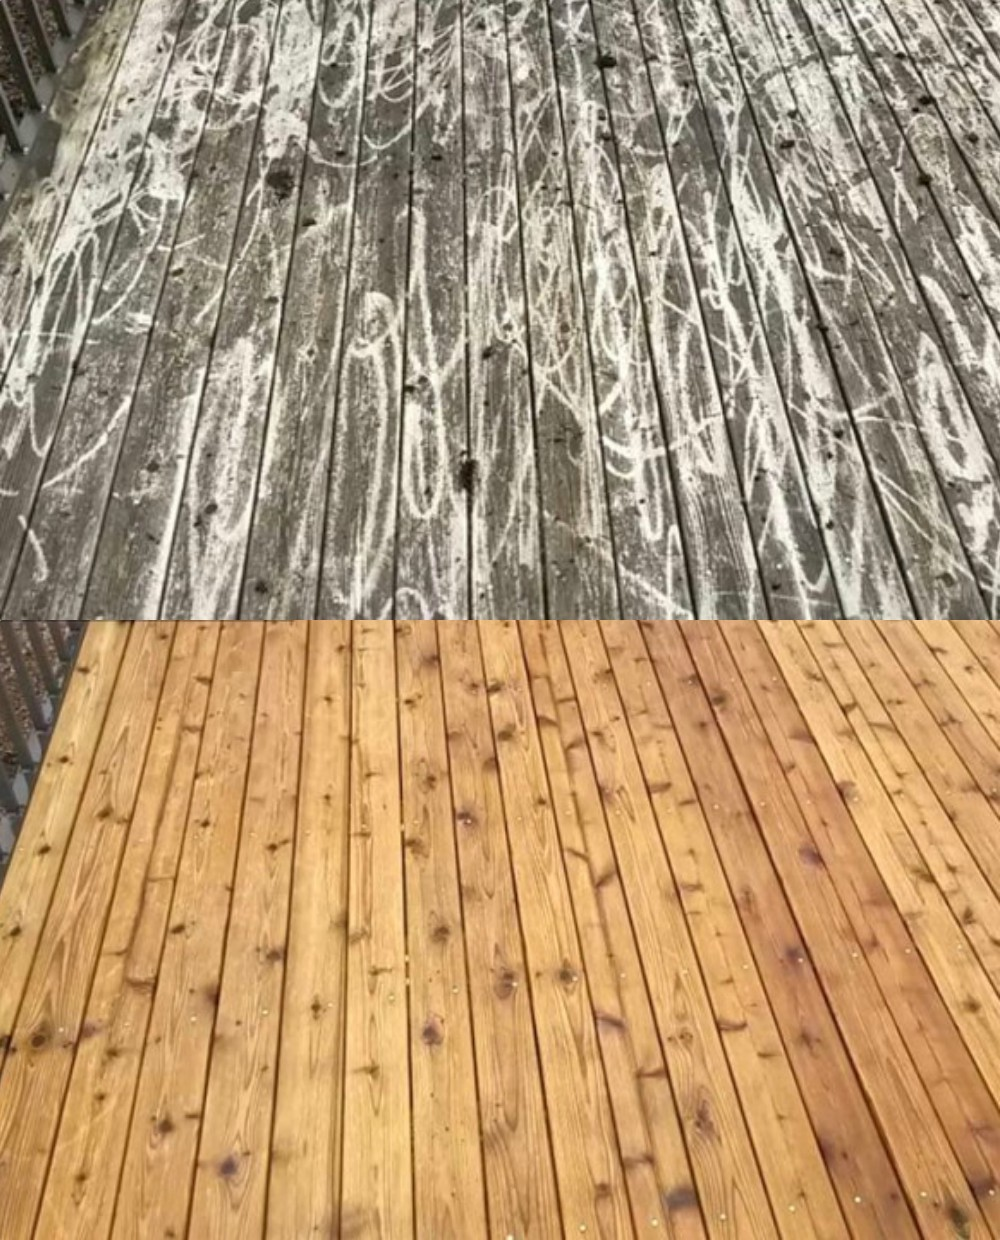 Pressure Washing & Deck Cleaning